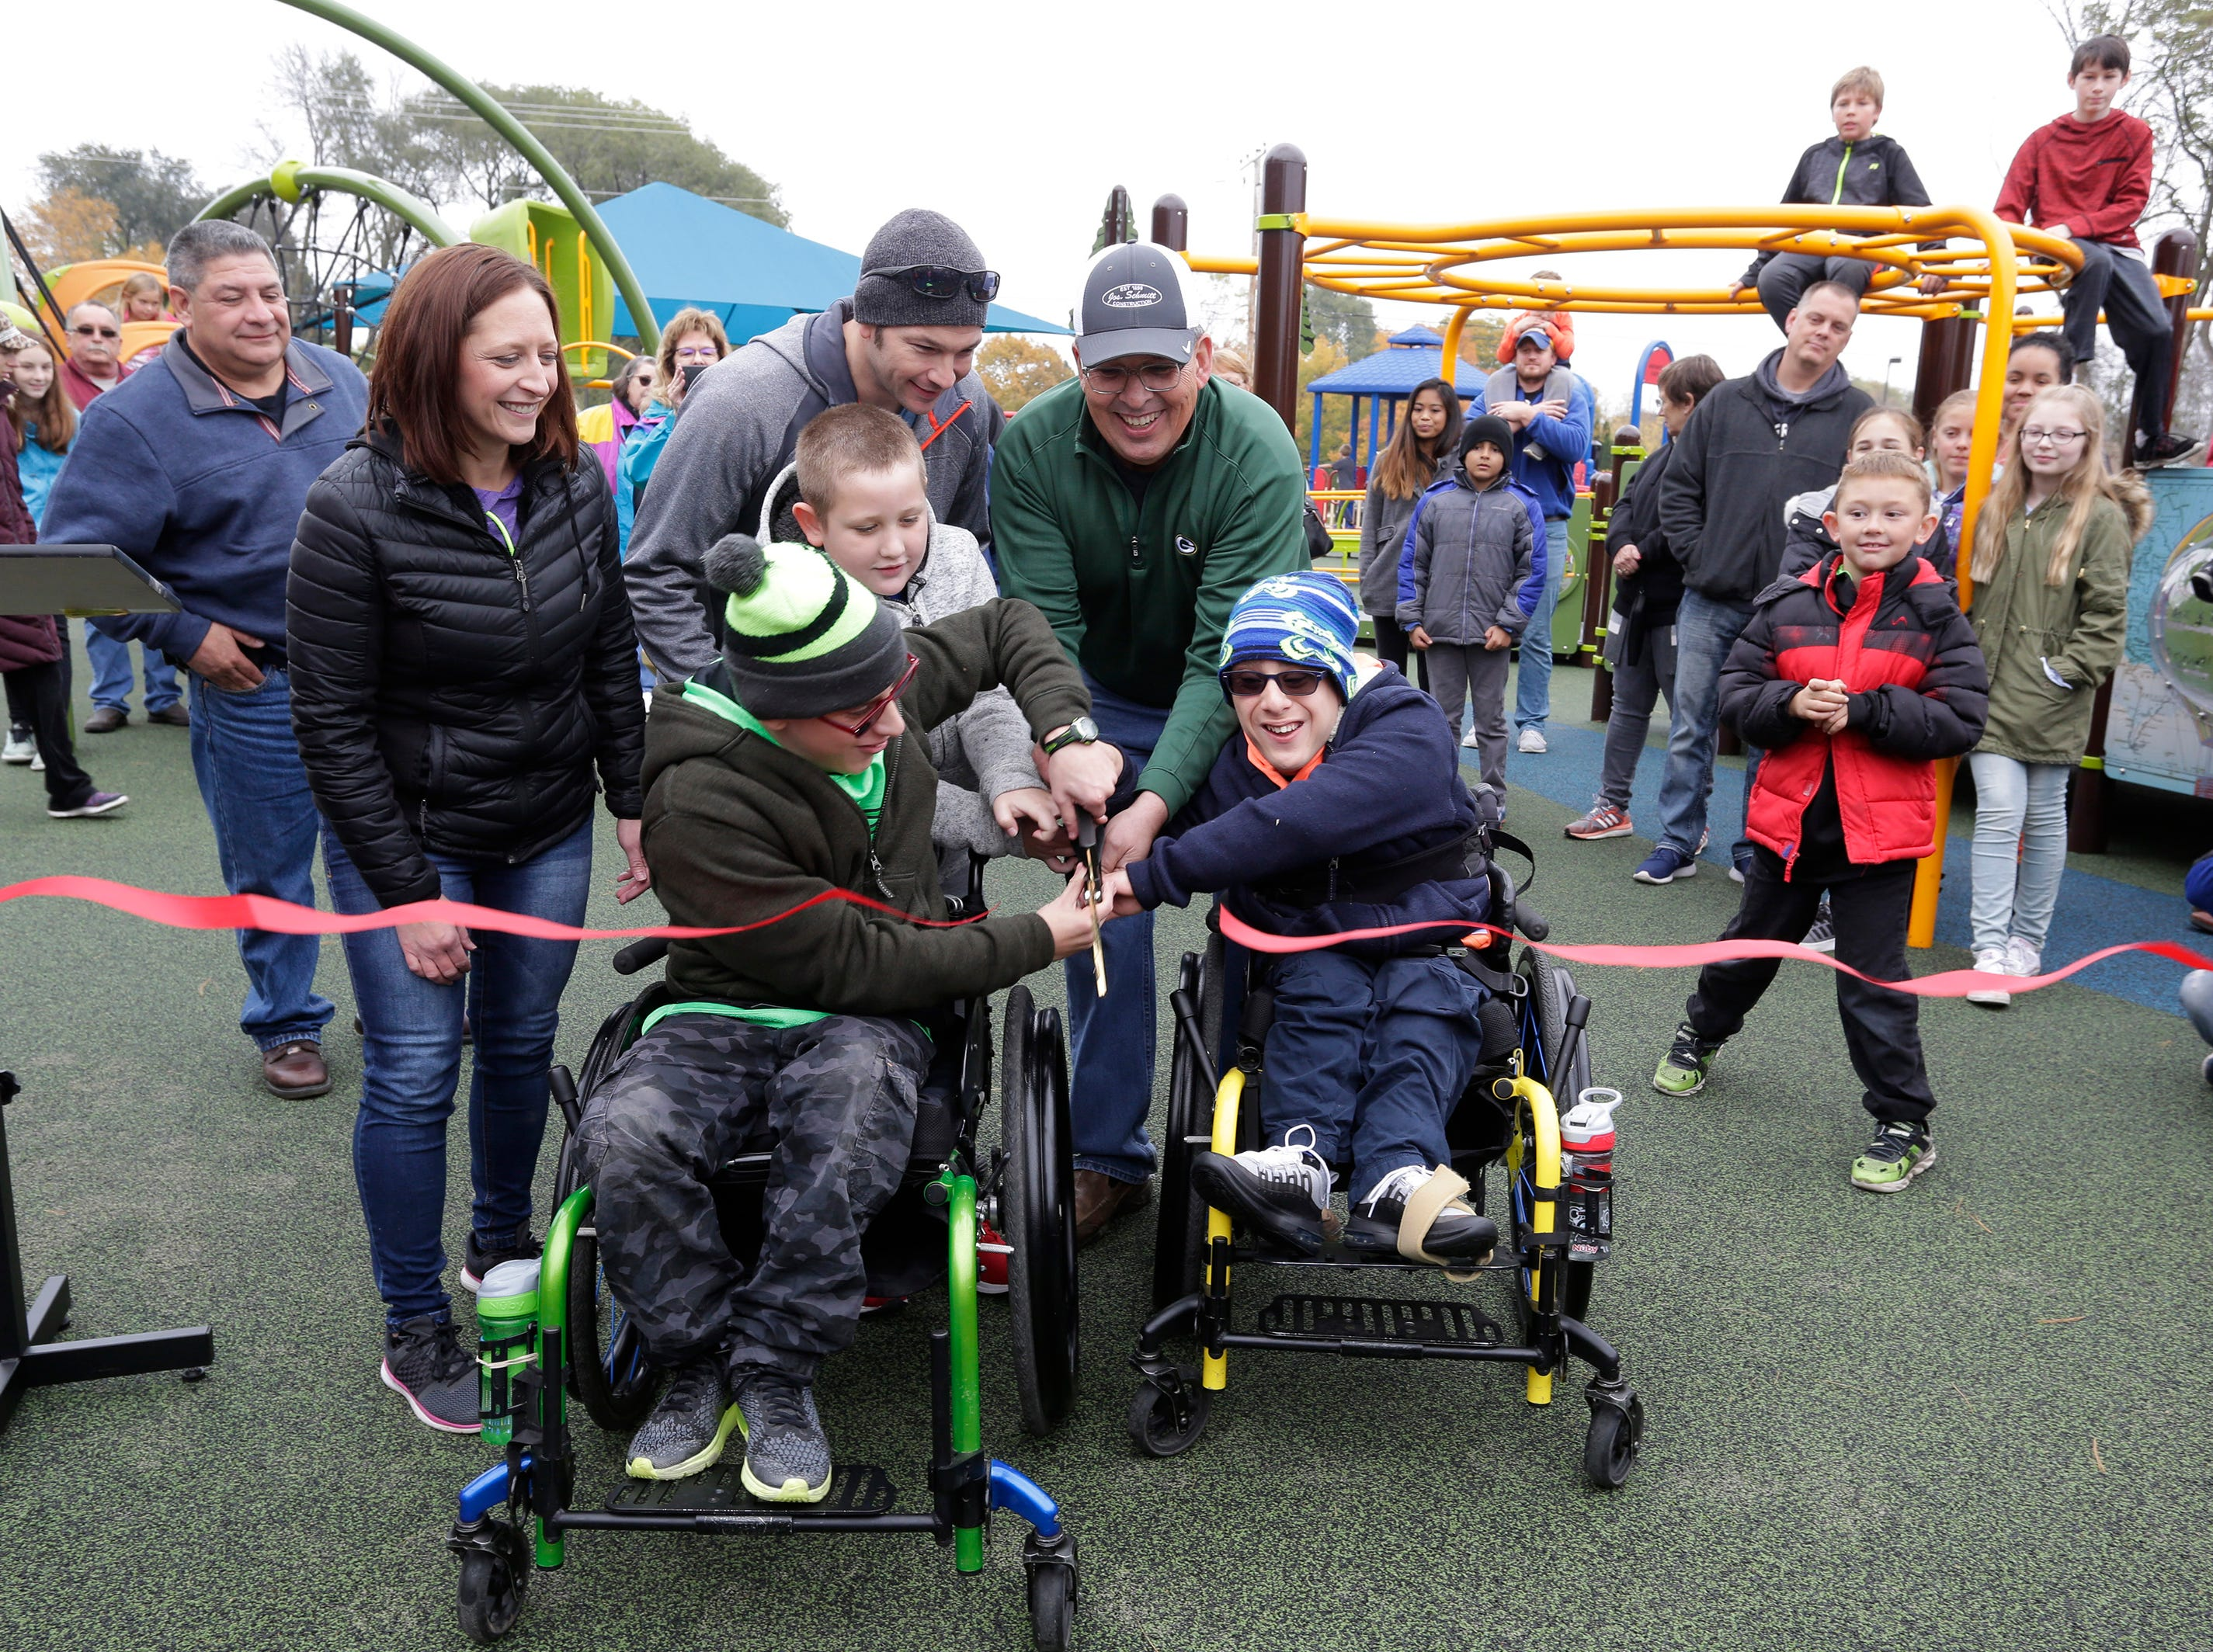 Mateo Shaw, left, and his brother McHale, both 12, cut the ribbon for the Shaw Family Playground, Saturday, September 27, 2018, in Sheboygan, Wis. The adaptive playground is an area that is accessible for children of all physical abilities.